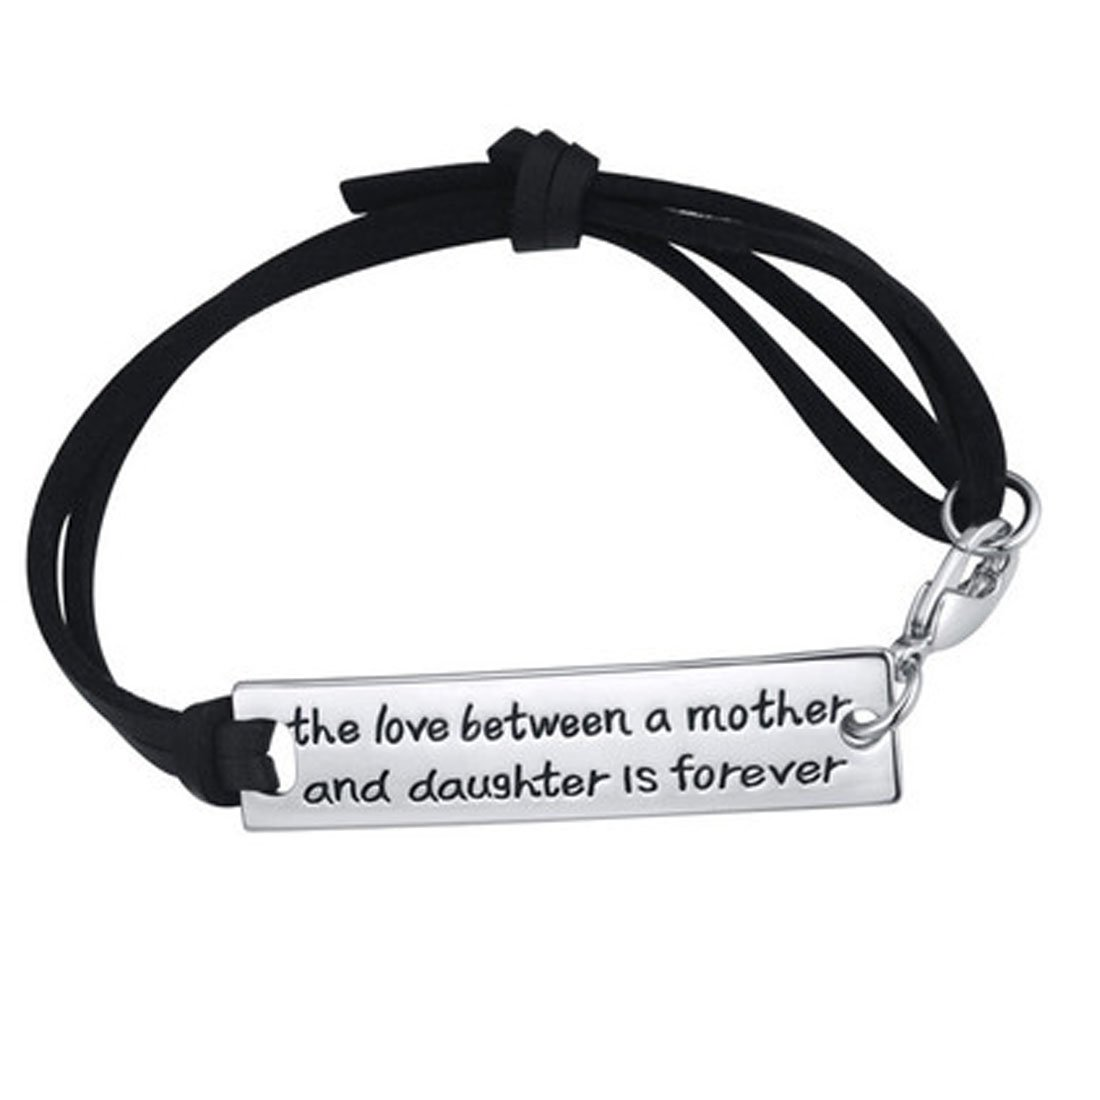 The Love Between a Mother and Daughter is Forever - Strap Bracelet Free Ship Deal